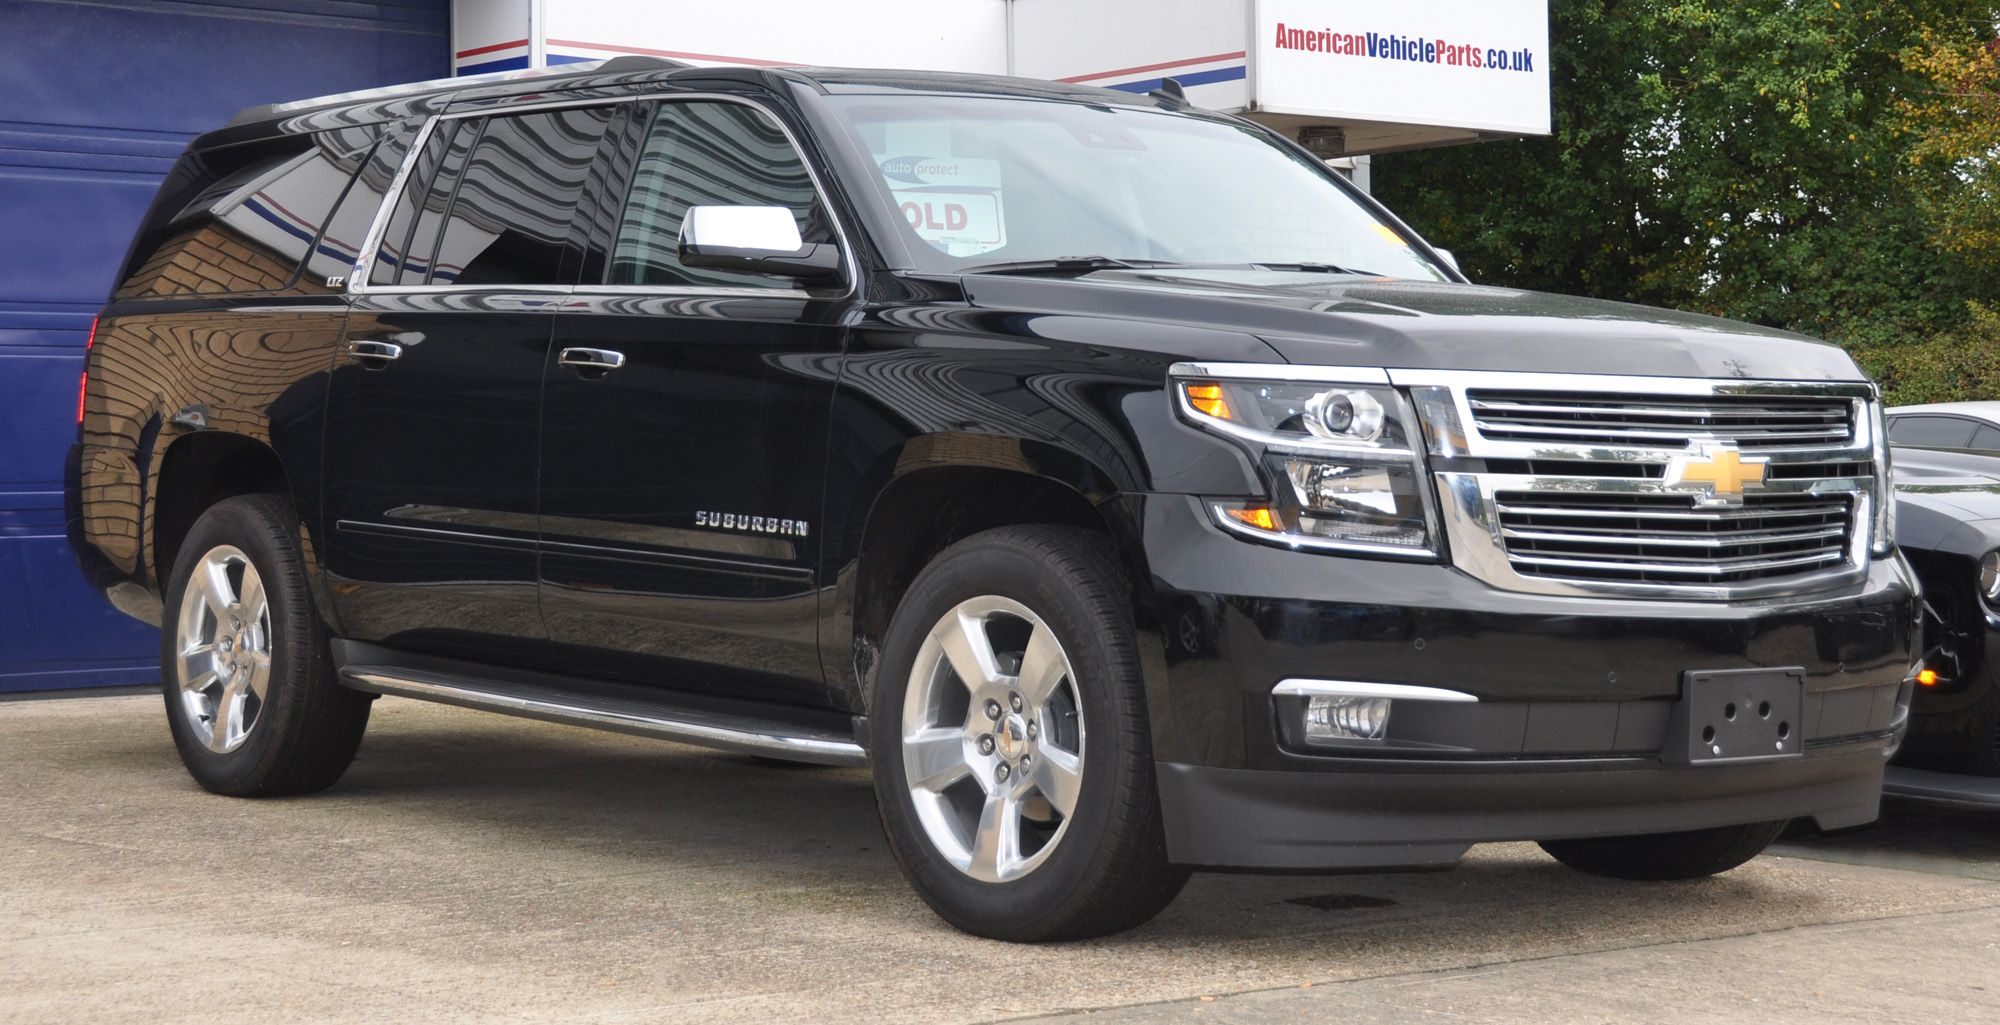 New American Vehicles For Sale In The Uk Cars Uk Chevrolet Suburban Cars For Sale